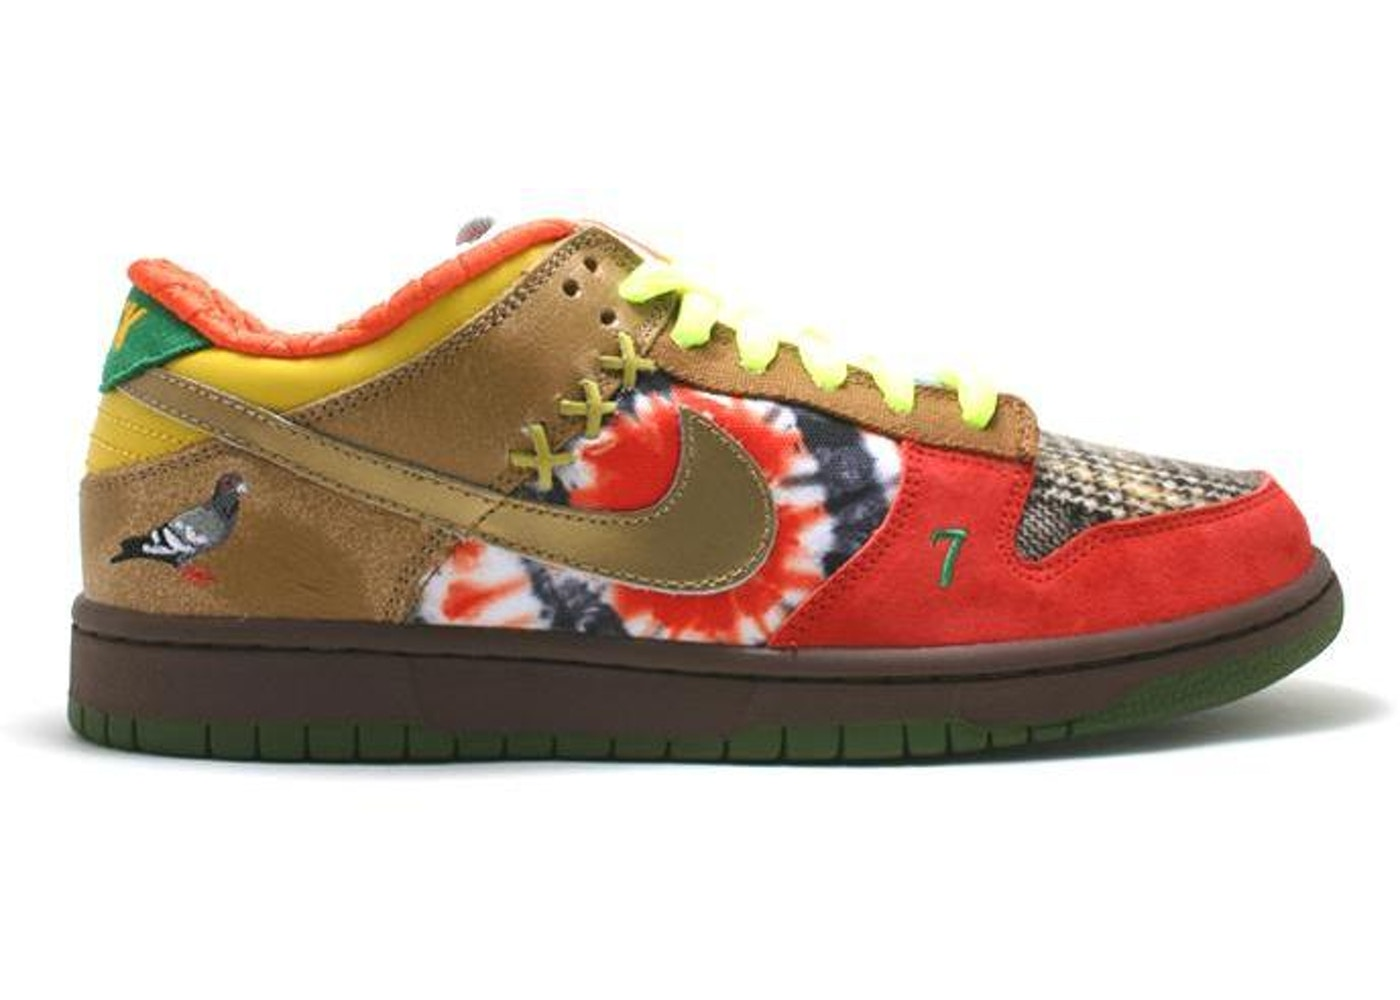 official photos 6717f 464ea Buy Nike SB Shoes & Deadstock Sneakers